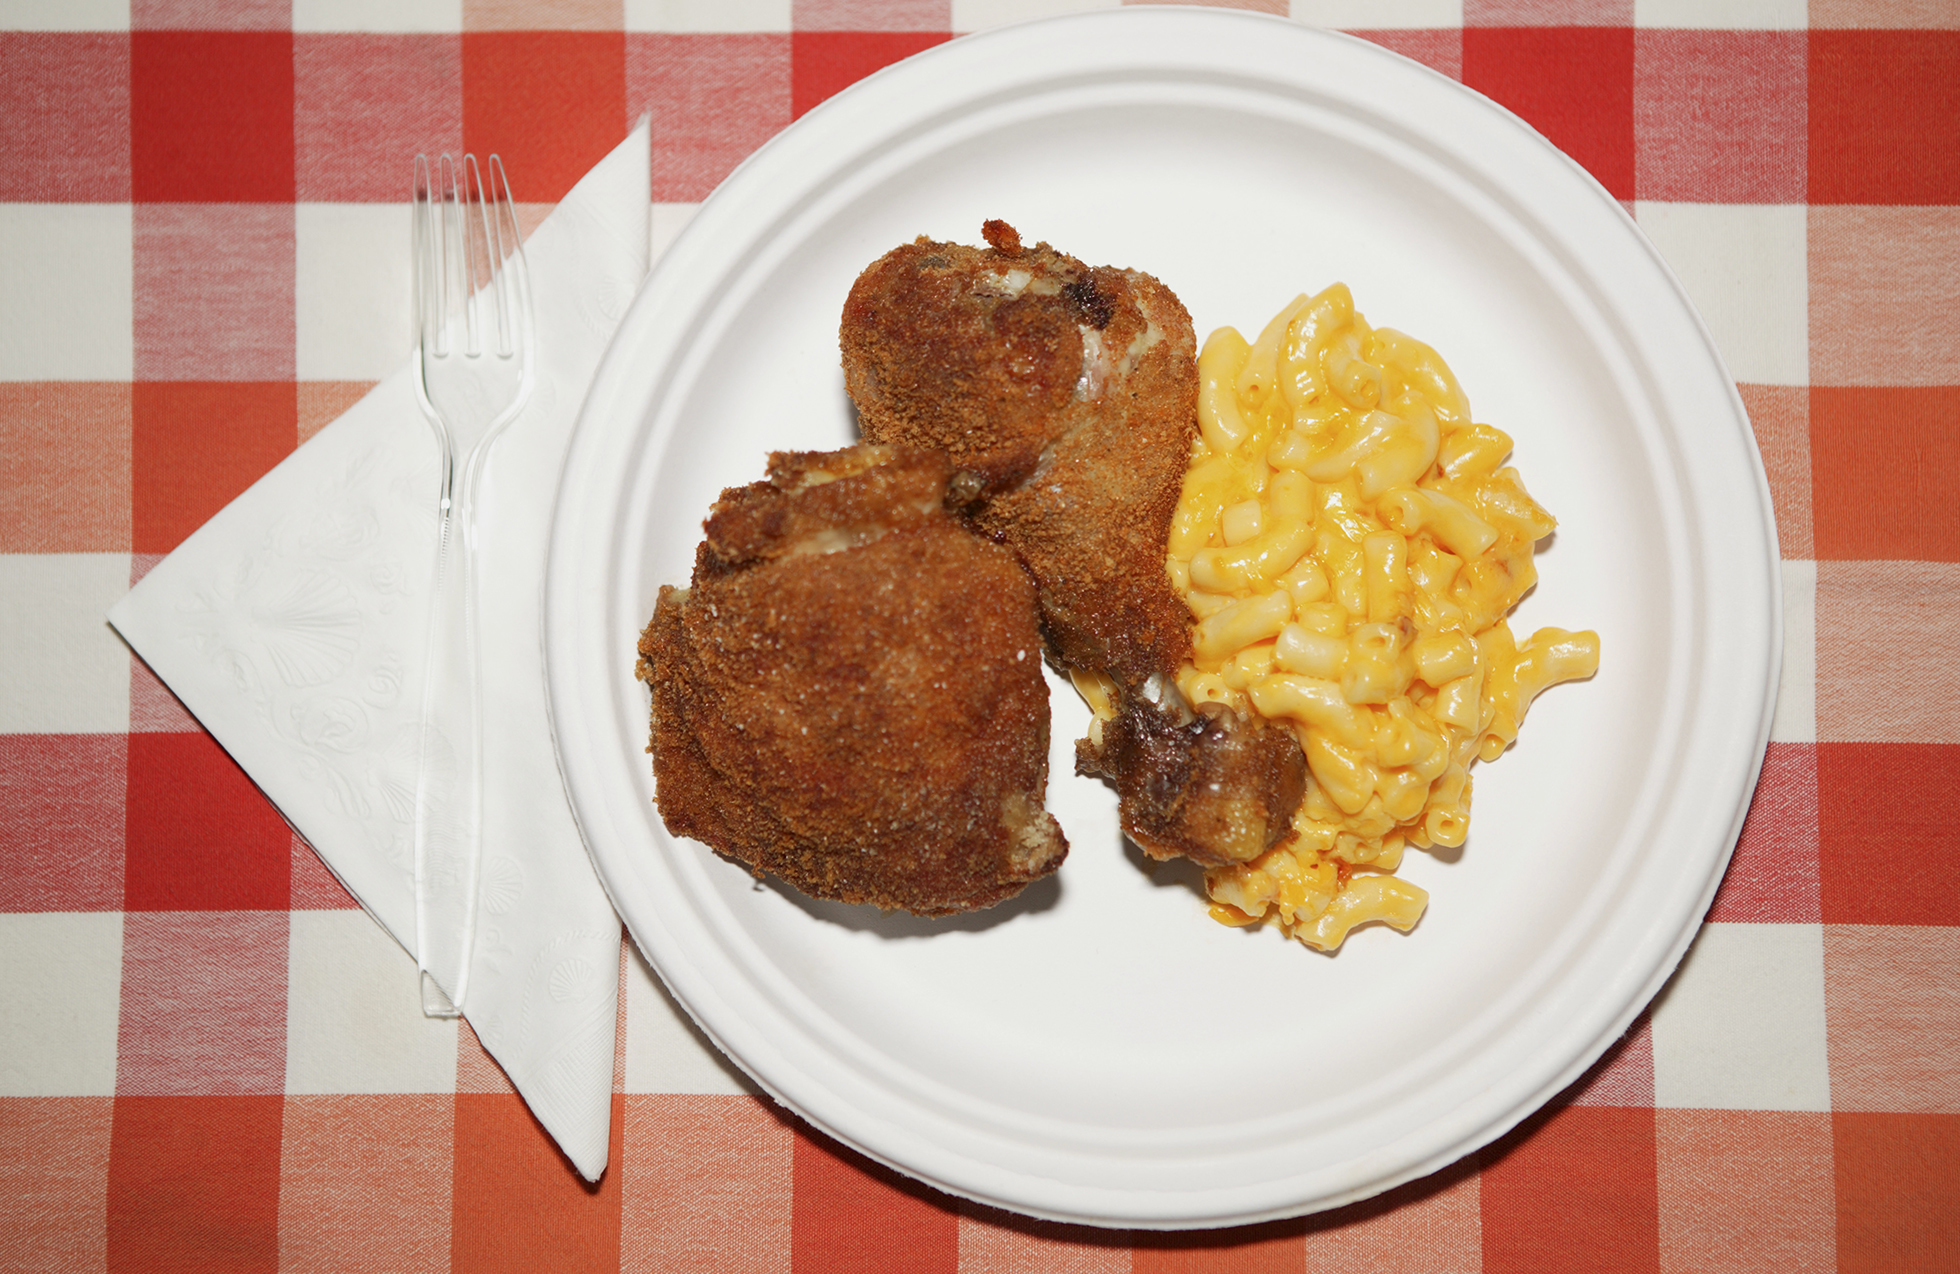 Fried chicken and mac and cheese: A study suggests Southern cuisine may be at the center of a tangled web of reasons why black people in America are more prone to hypertension than white people. (Robert Manella/Getty Images)